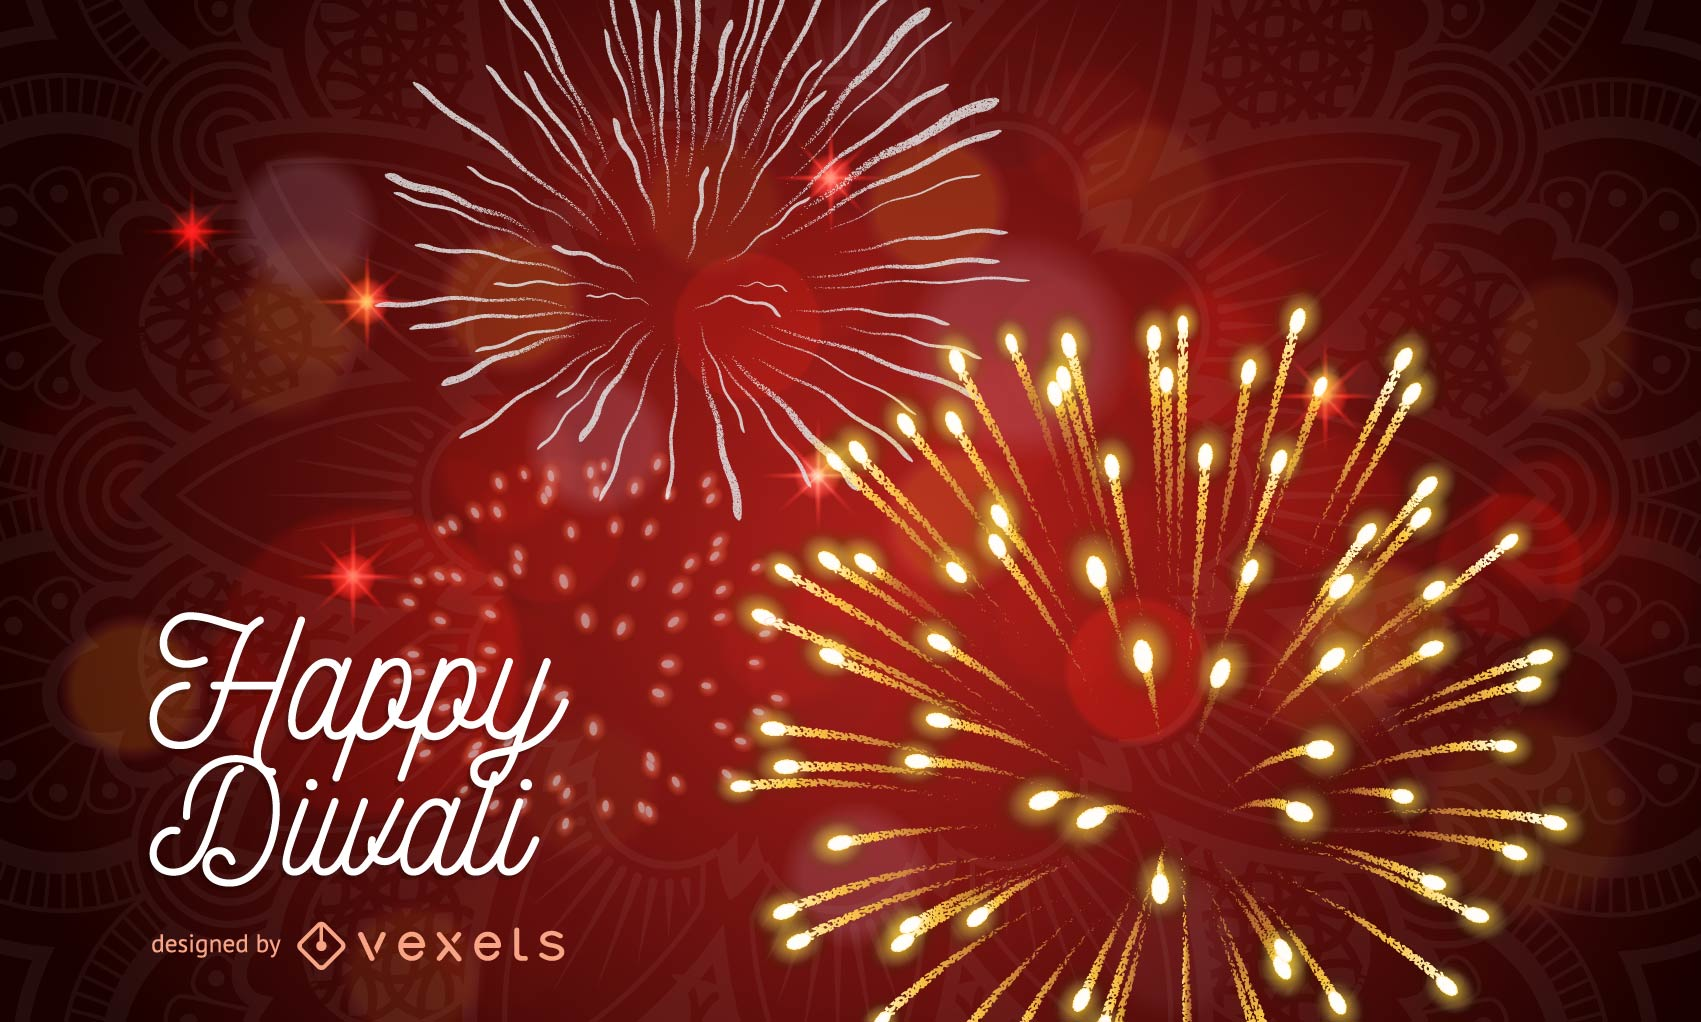 Diwali background with sparks